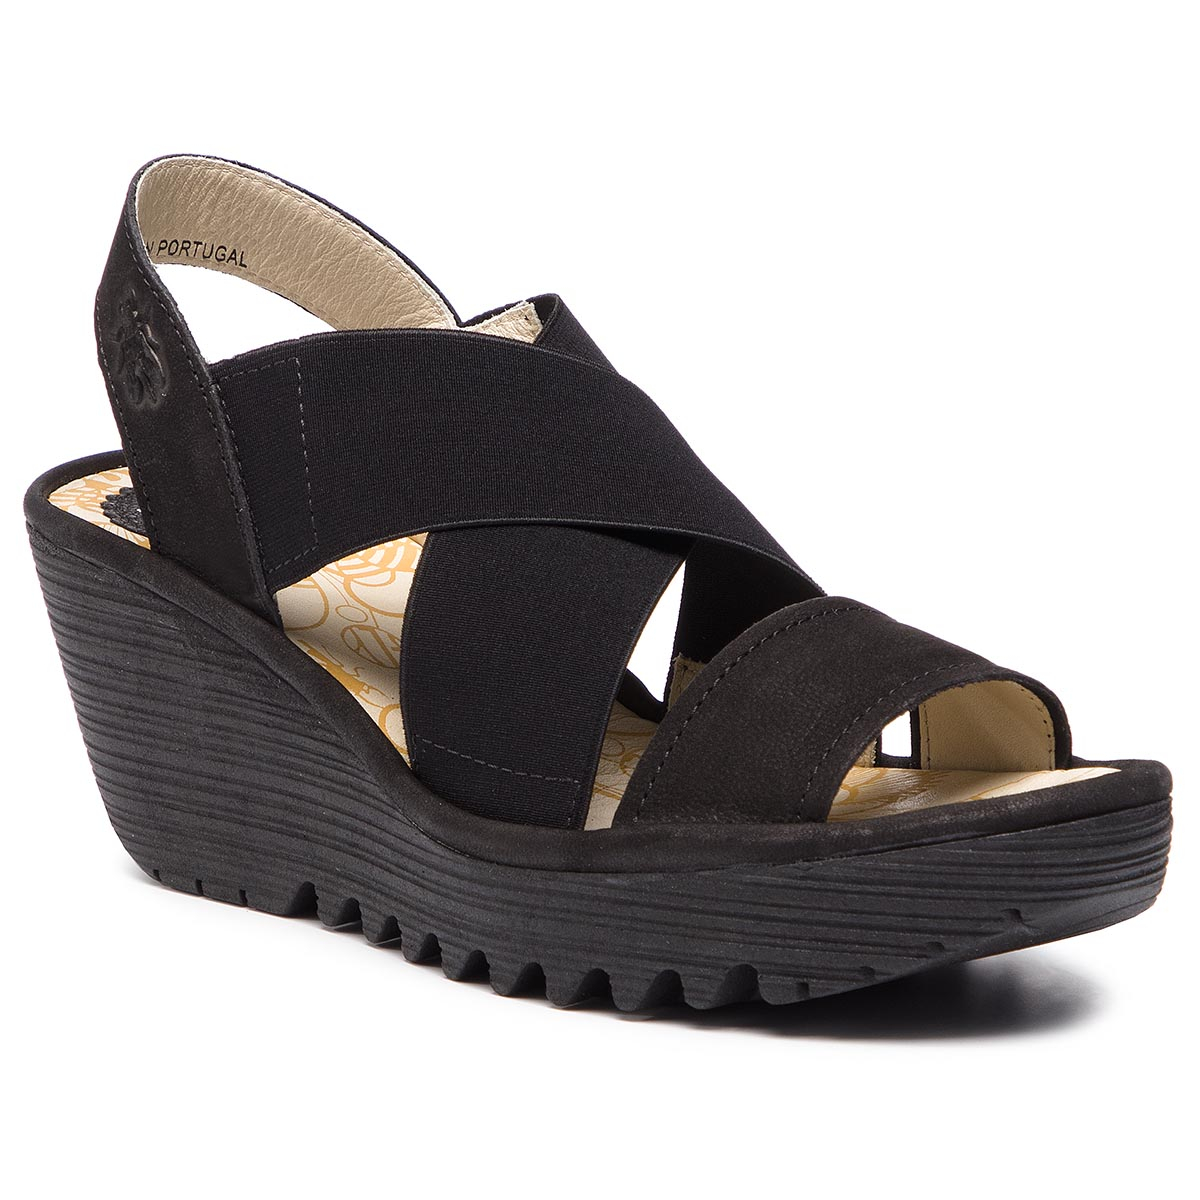 Sandály FLY LONDON - Yajifly P500888000 Black